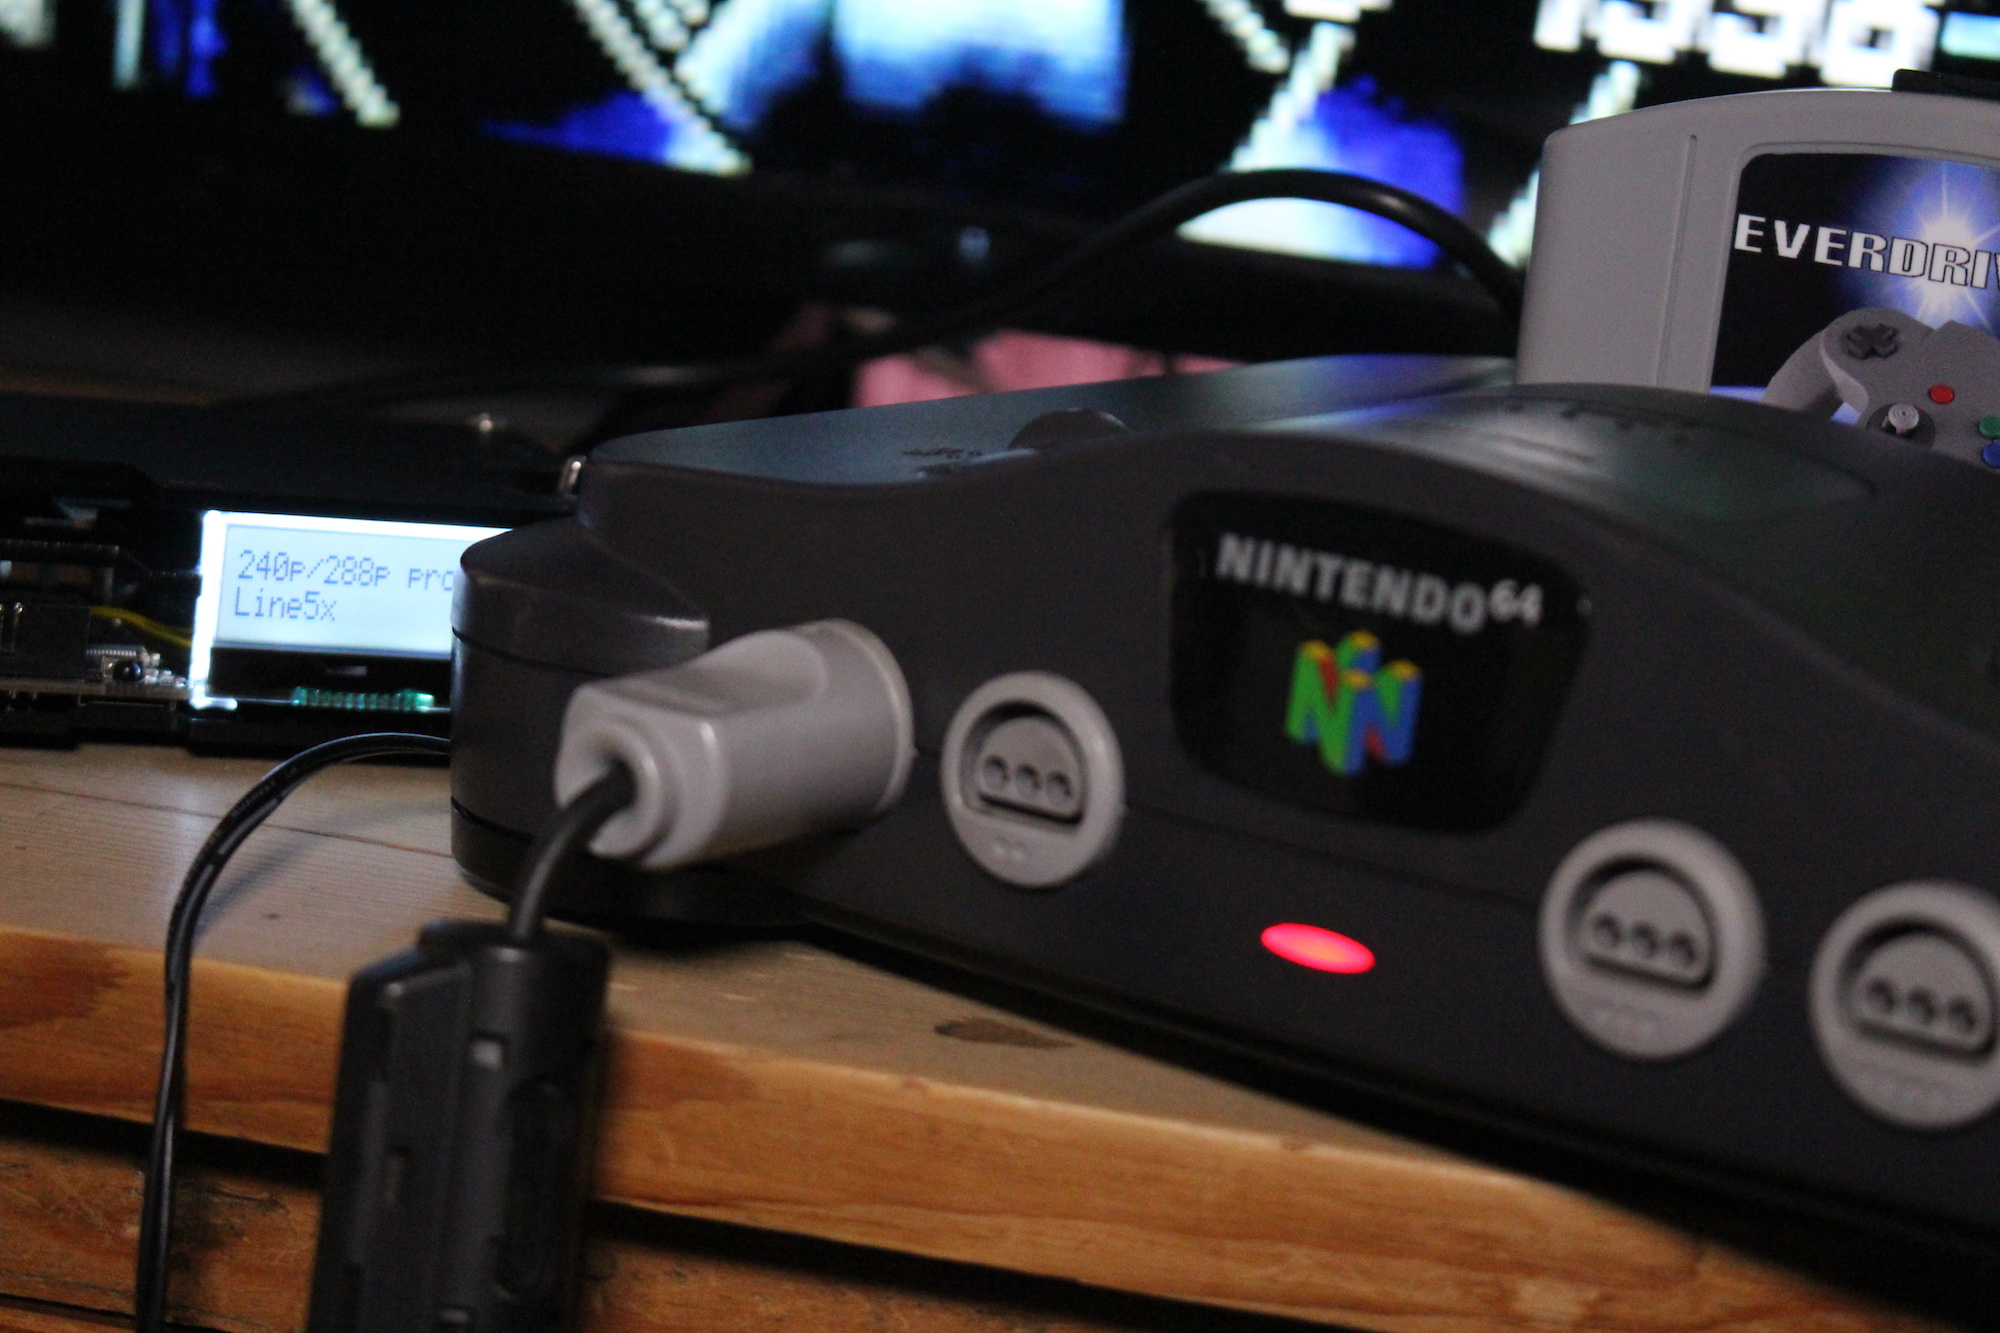 Getting The Best Picture Out Of Your Nintendo 64: The RGB Edition